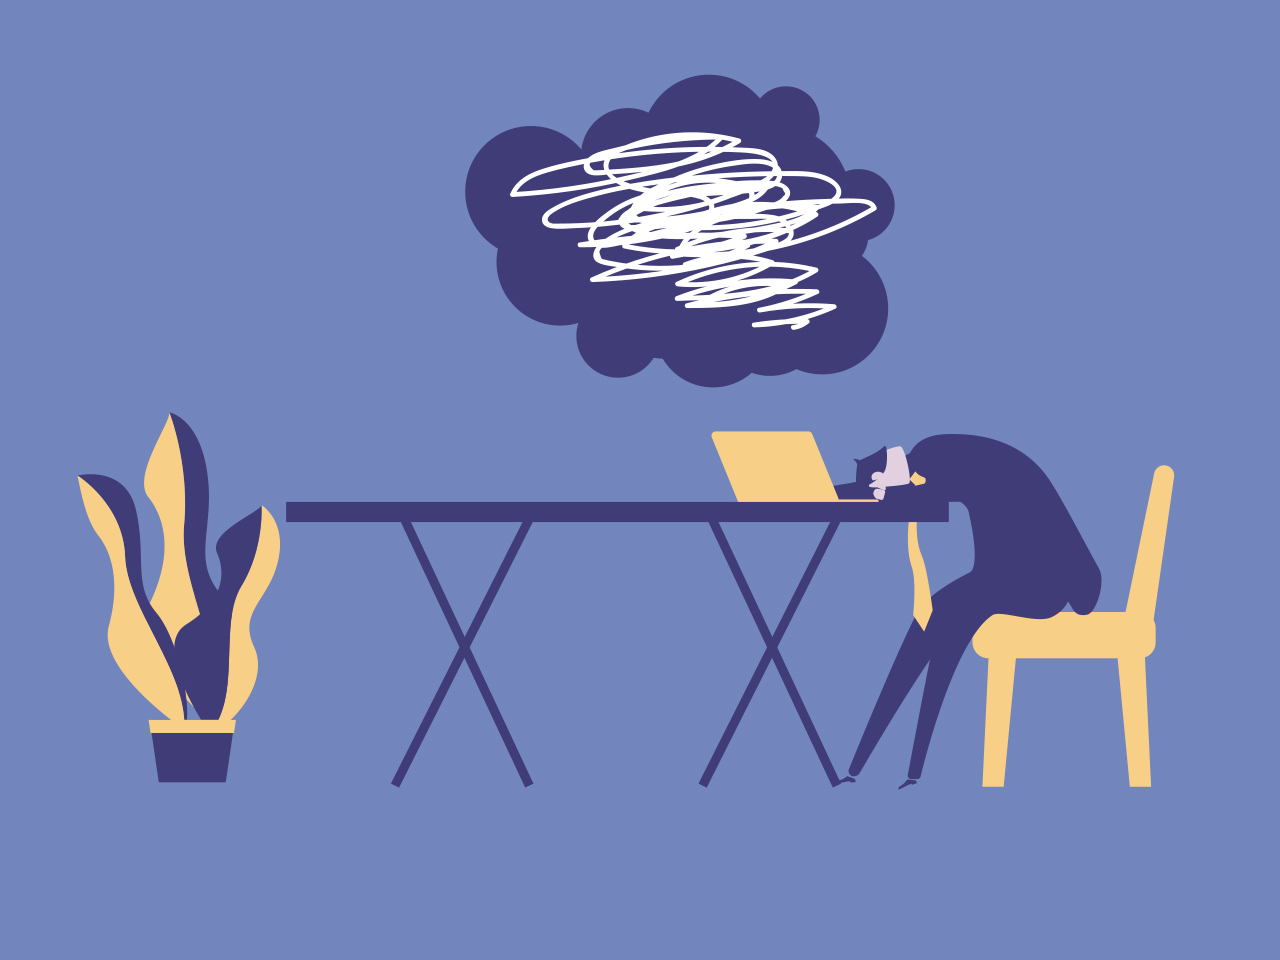 Illustration of person sitting at a desk infront of a laptop with their head down and a cloud above their head